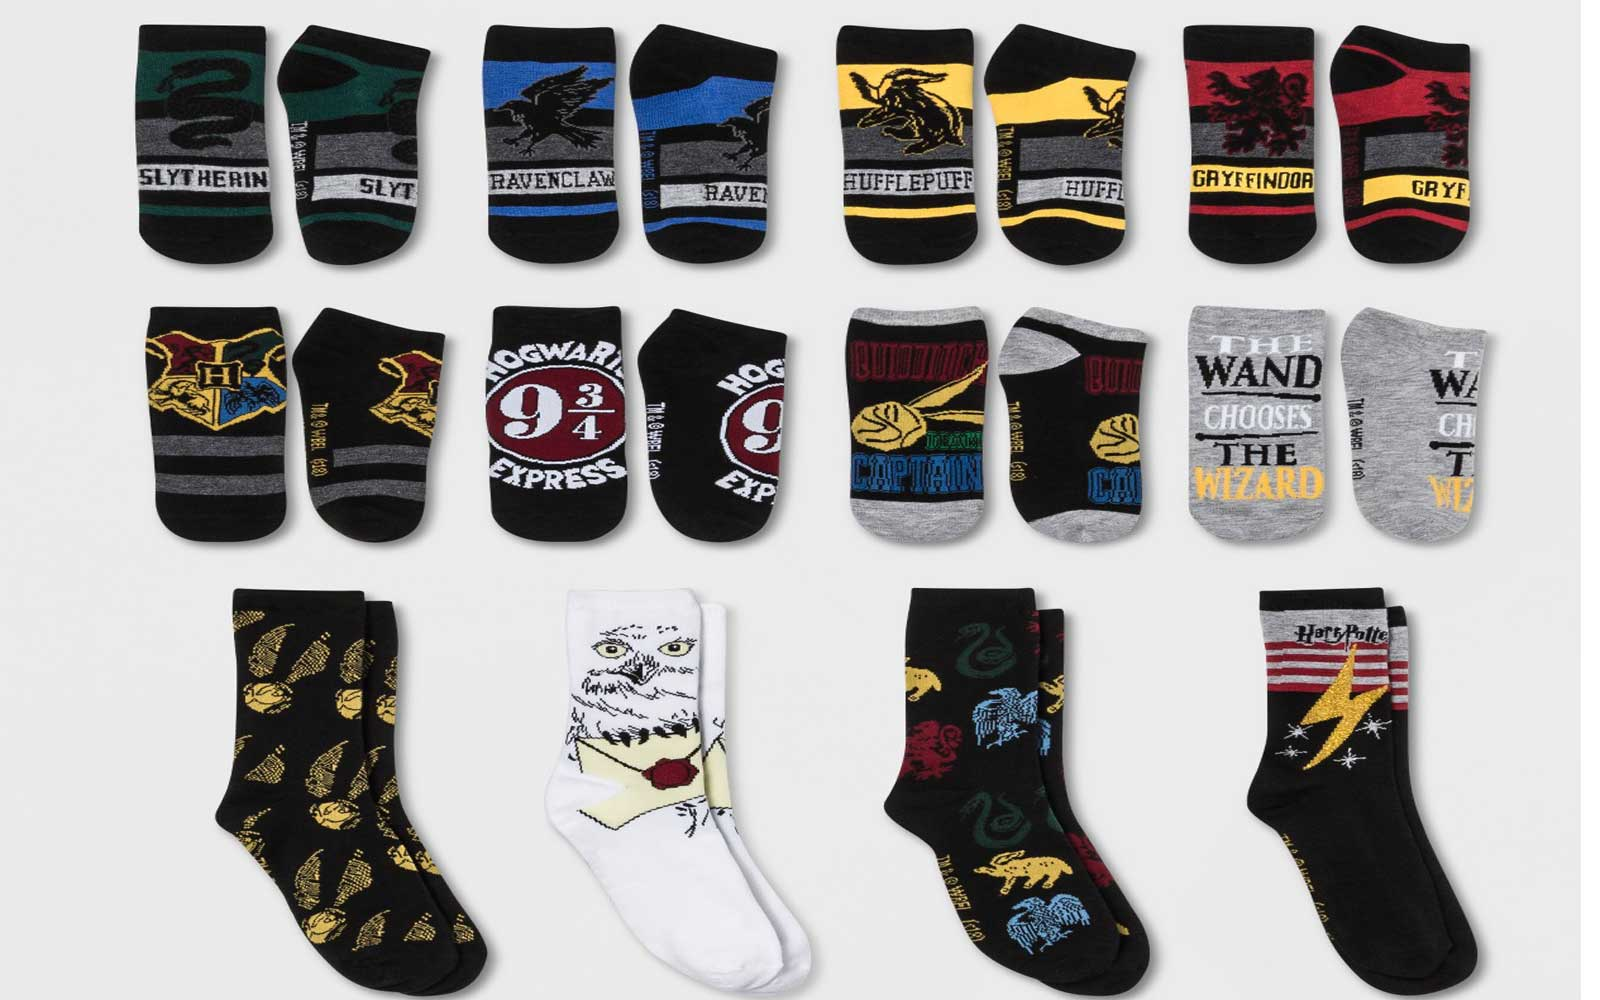 The Harry Potter sock collection is $15.